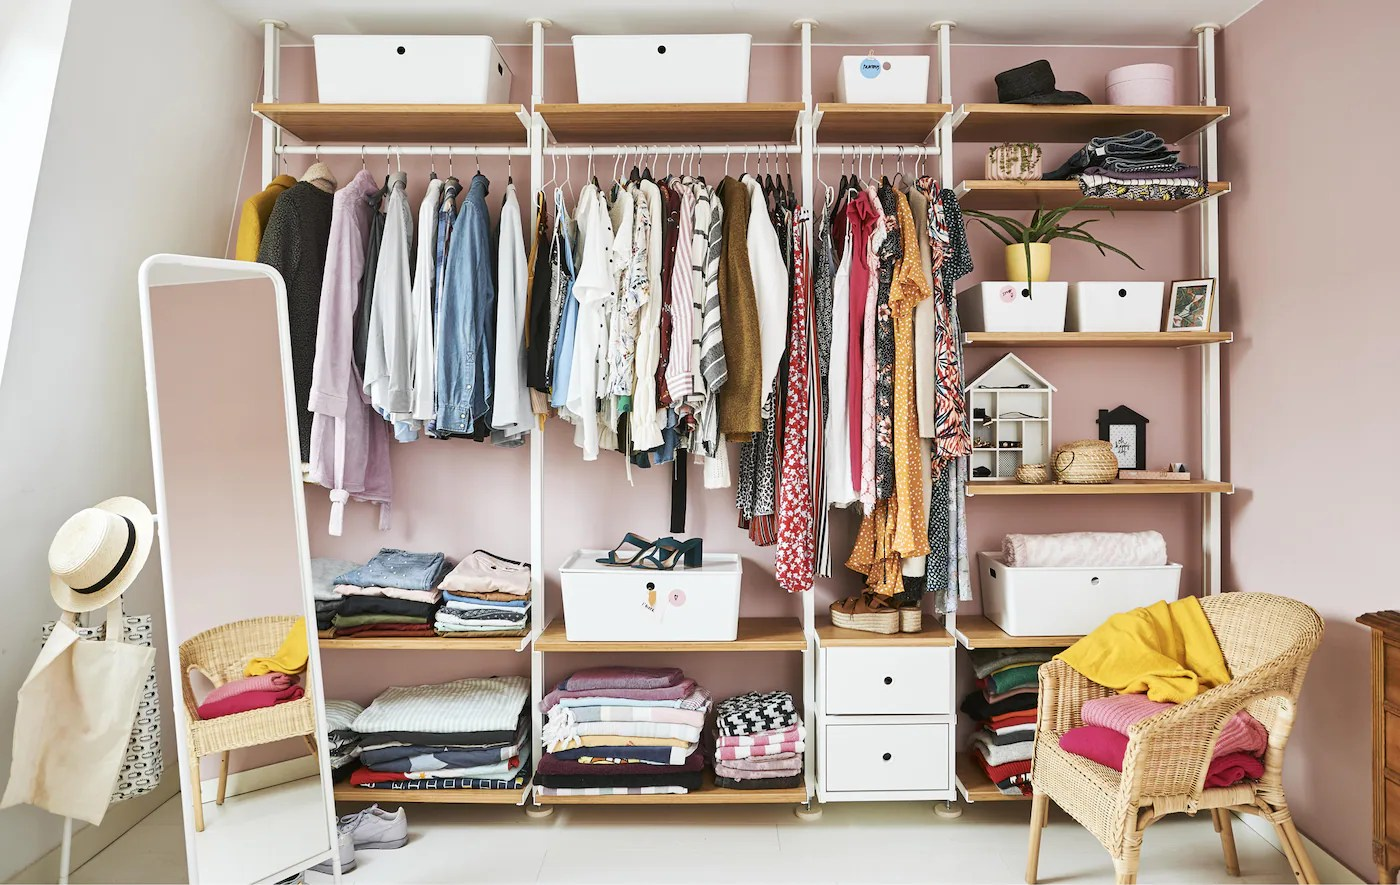 Design An Open Wardrobe To Perfectly Fit Your Needs Ikea